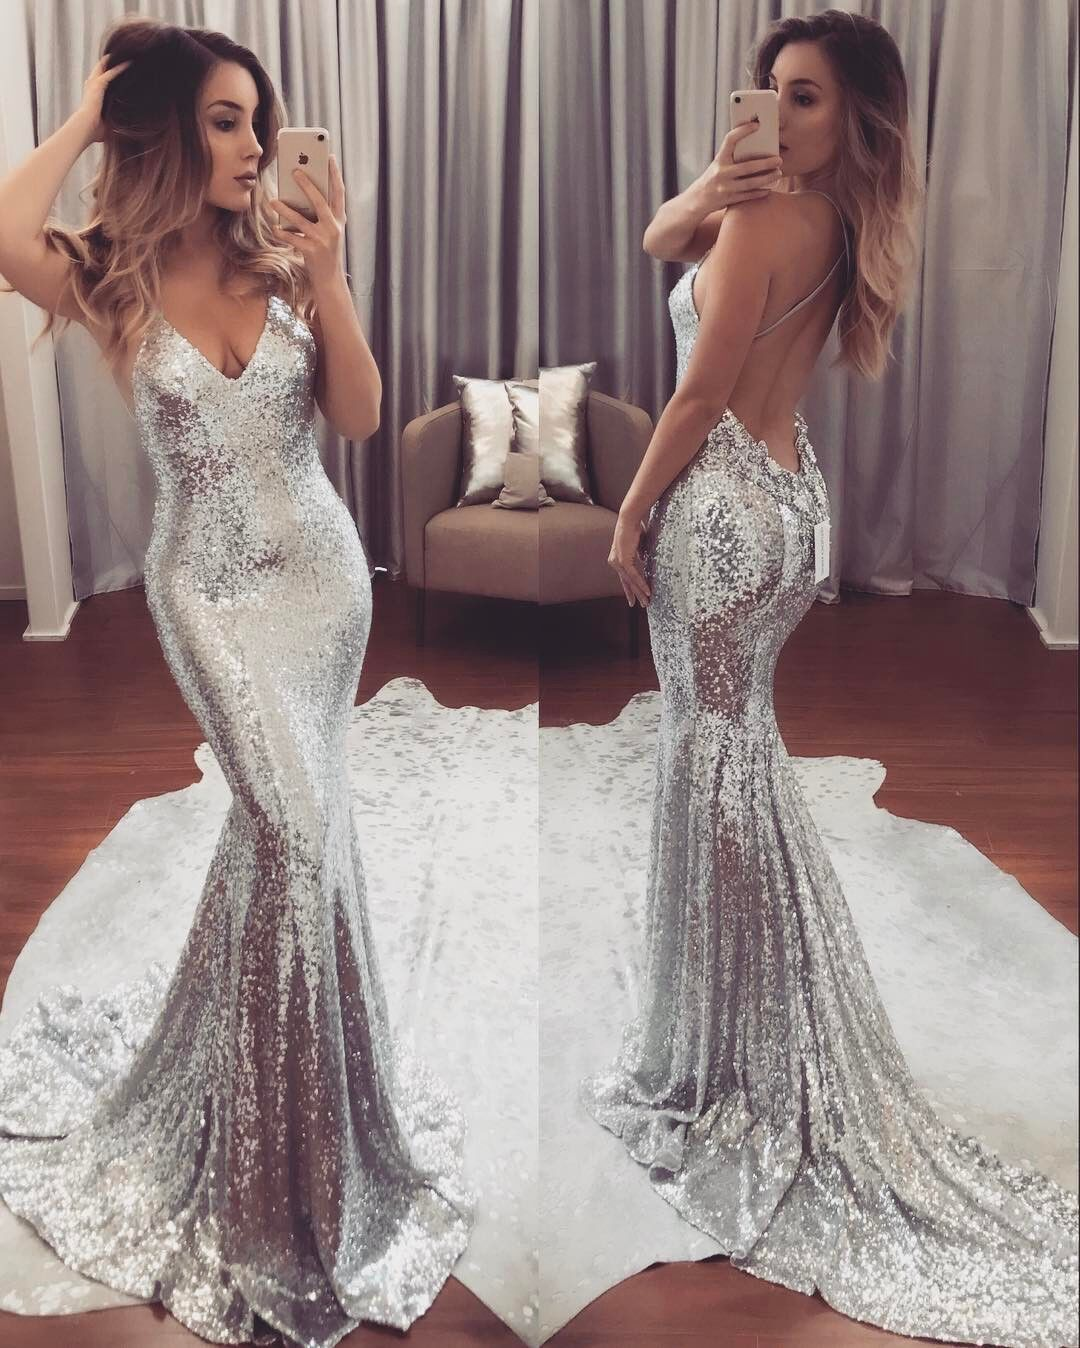 New Fashion Silver Sequin V Neck Prom Dresssexy Backless Mermaid Formal Gown: Silver V Neck Wedding Dress At Websimilar.org